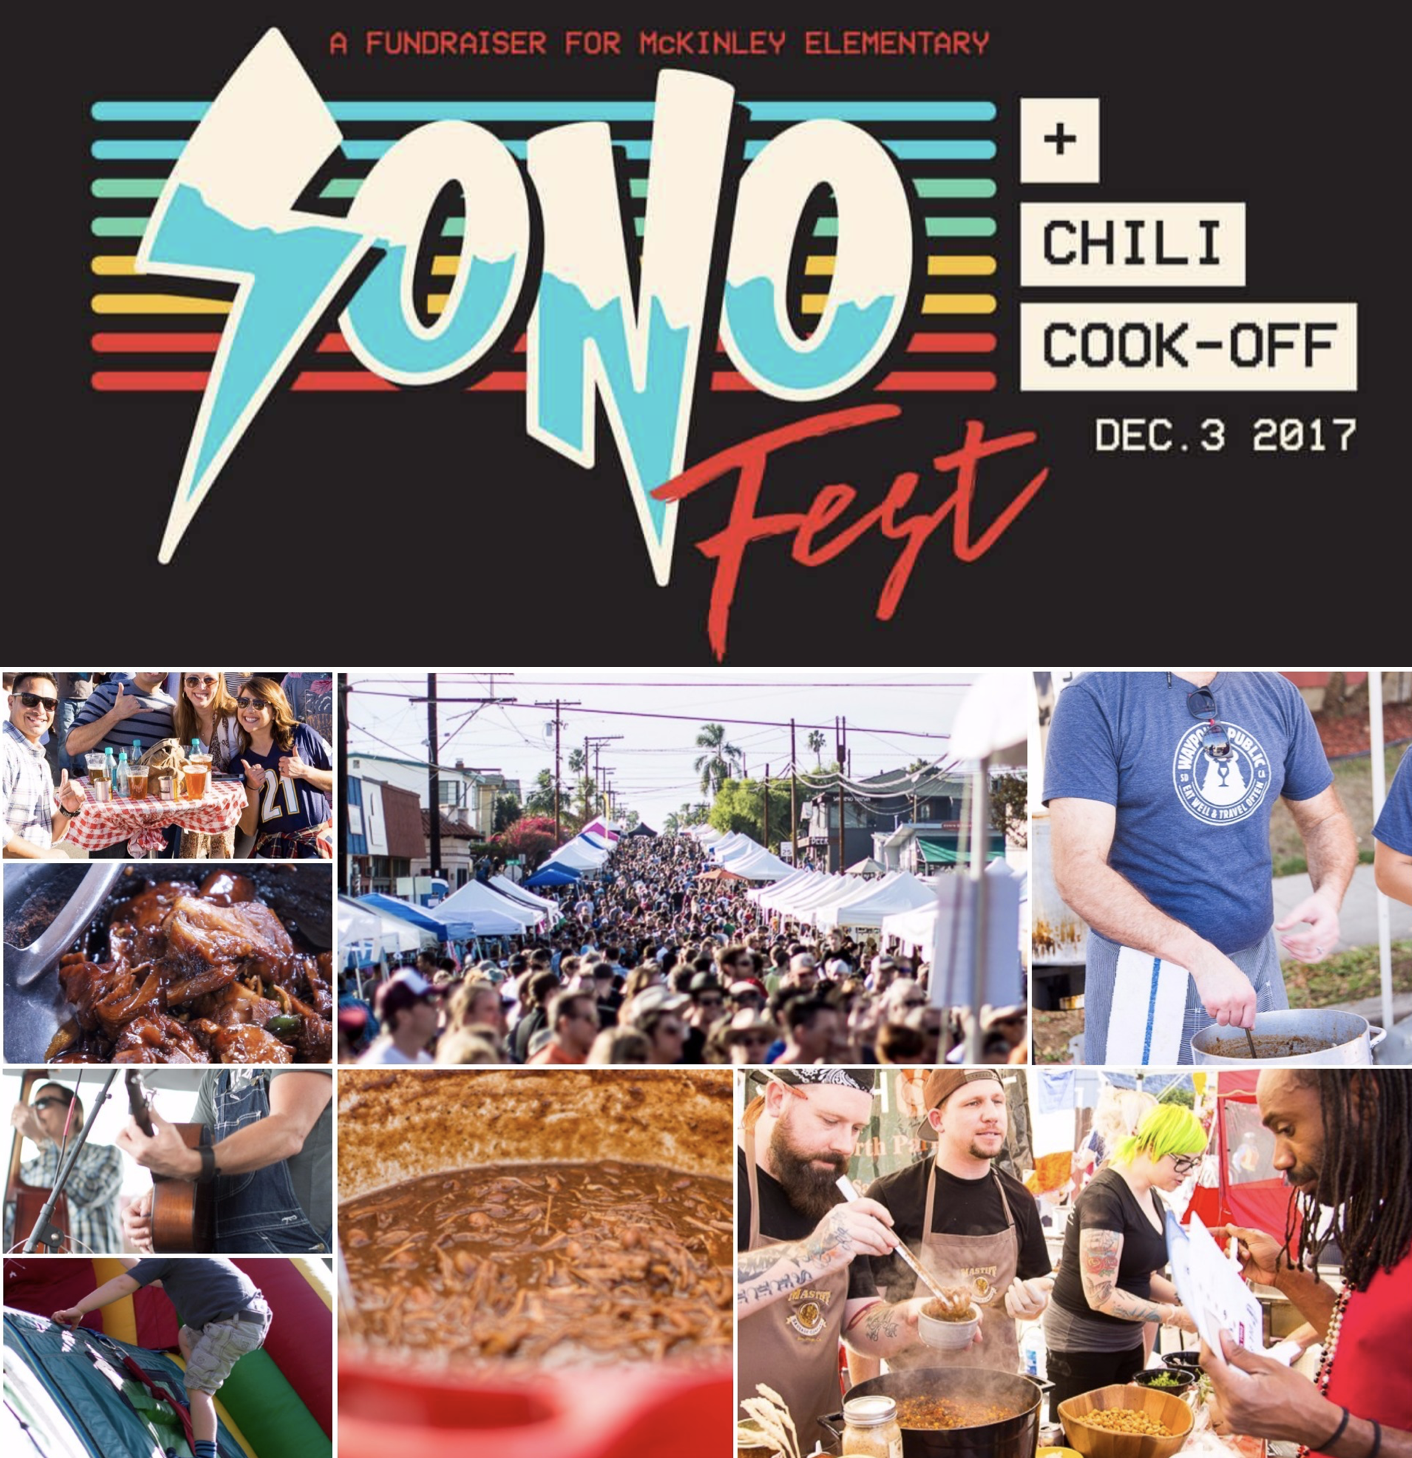 SoNo Fest & Chili Cookout Returns On Sunday, December 3!